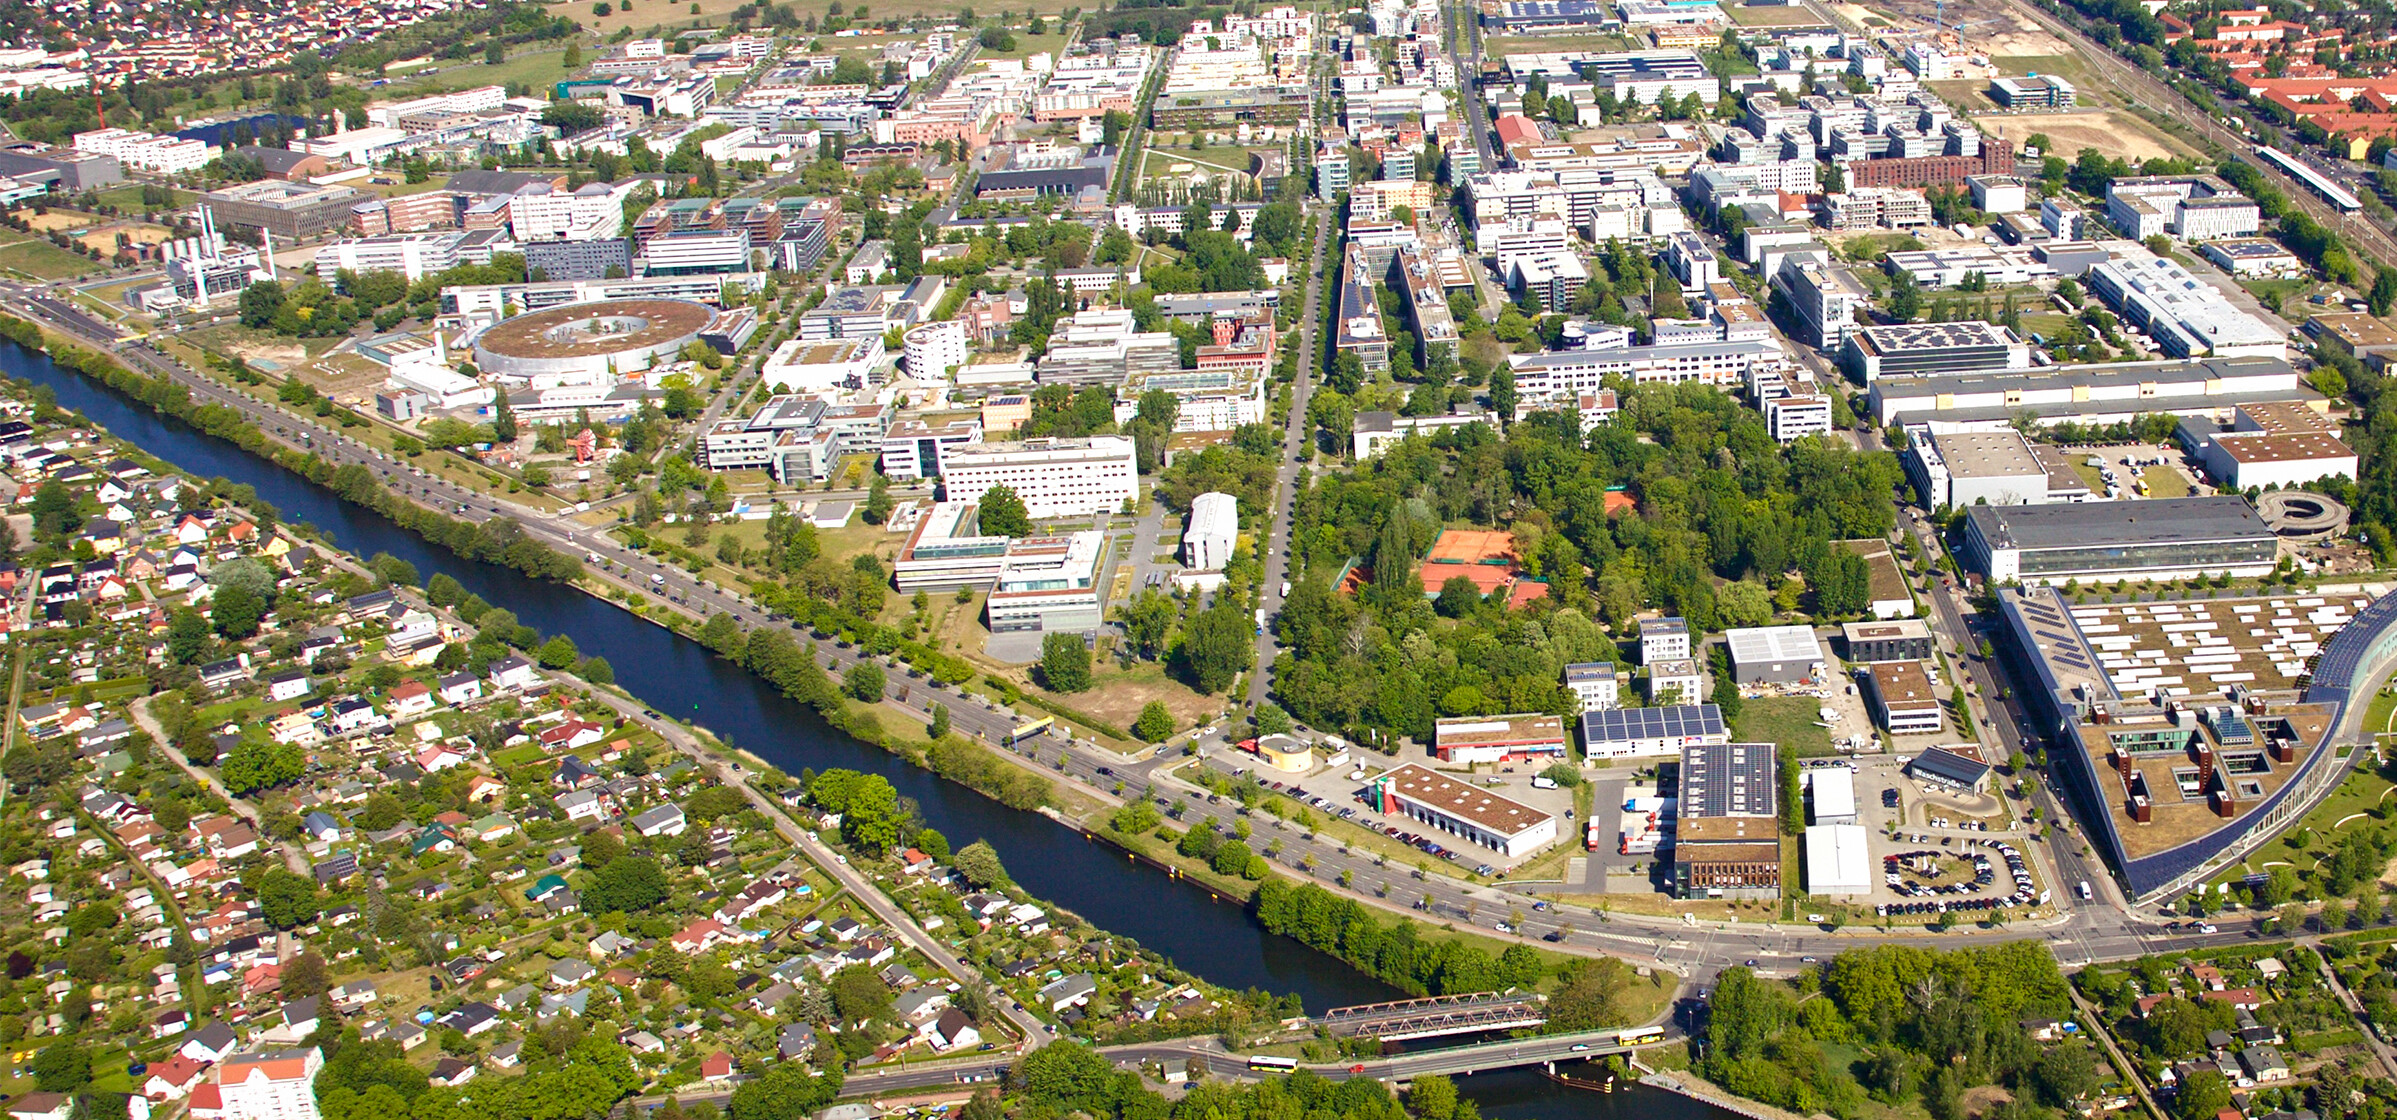 Adlershof technology park